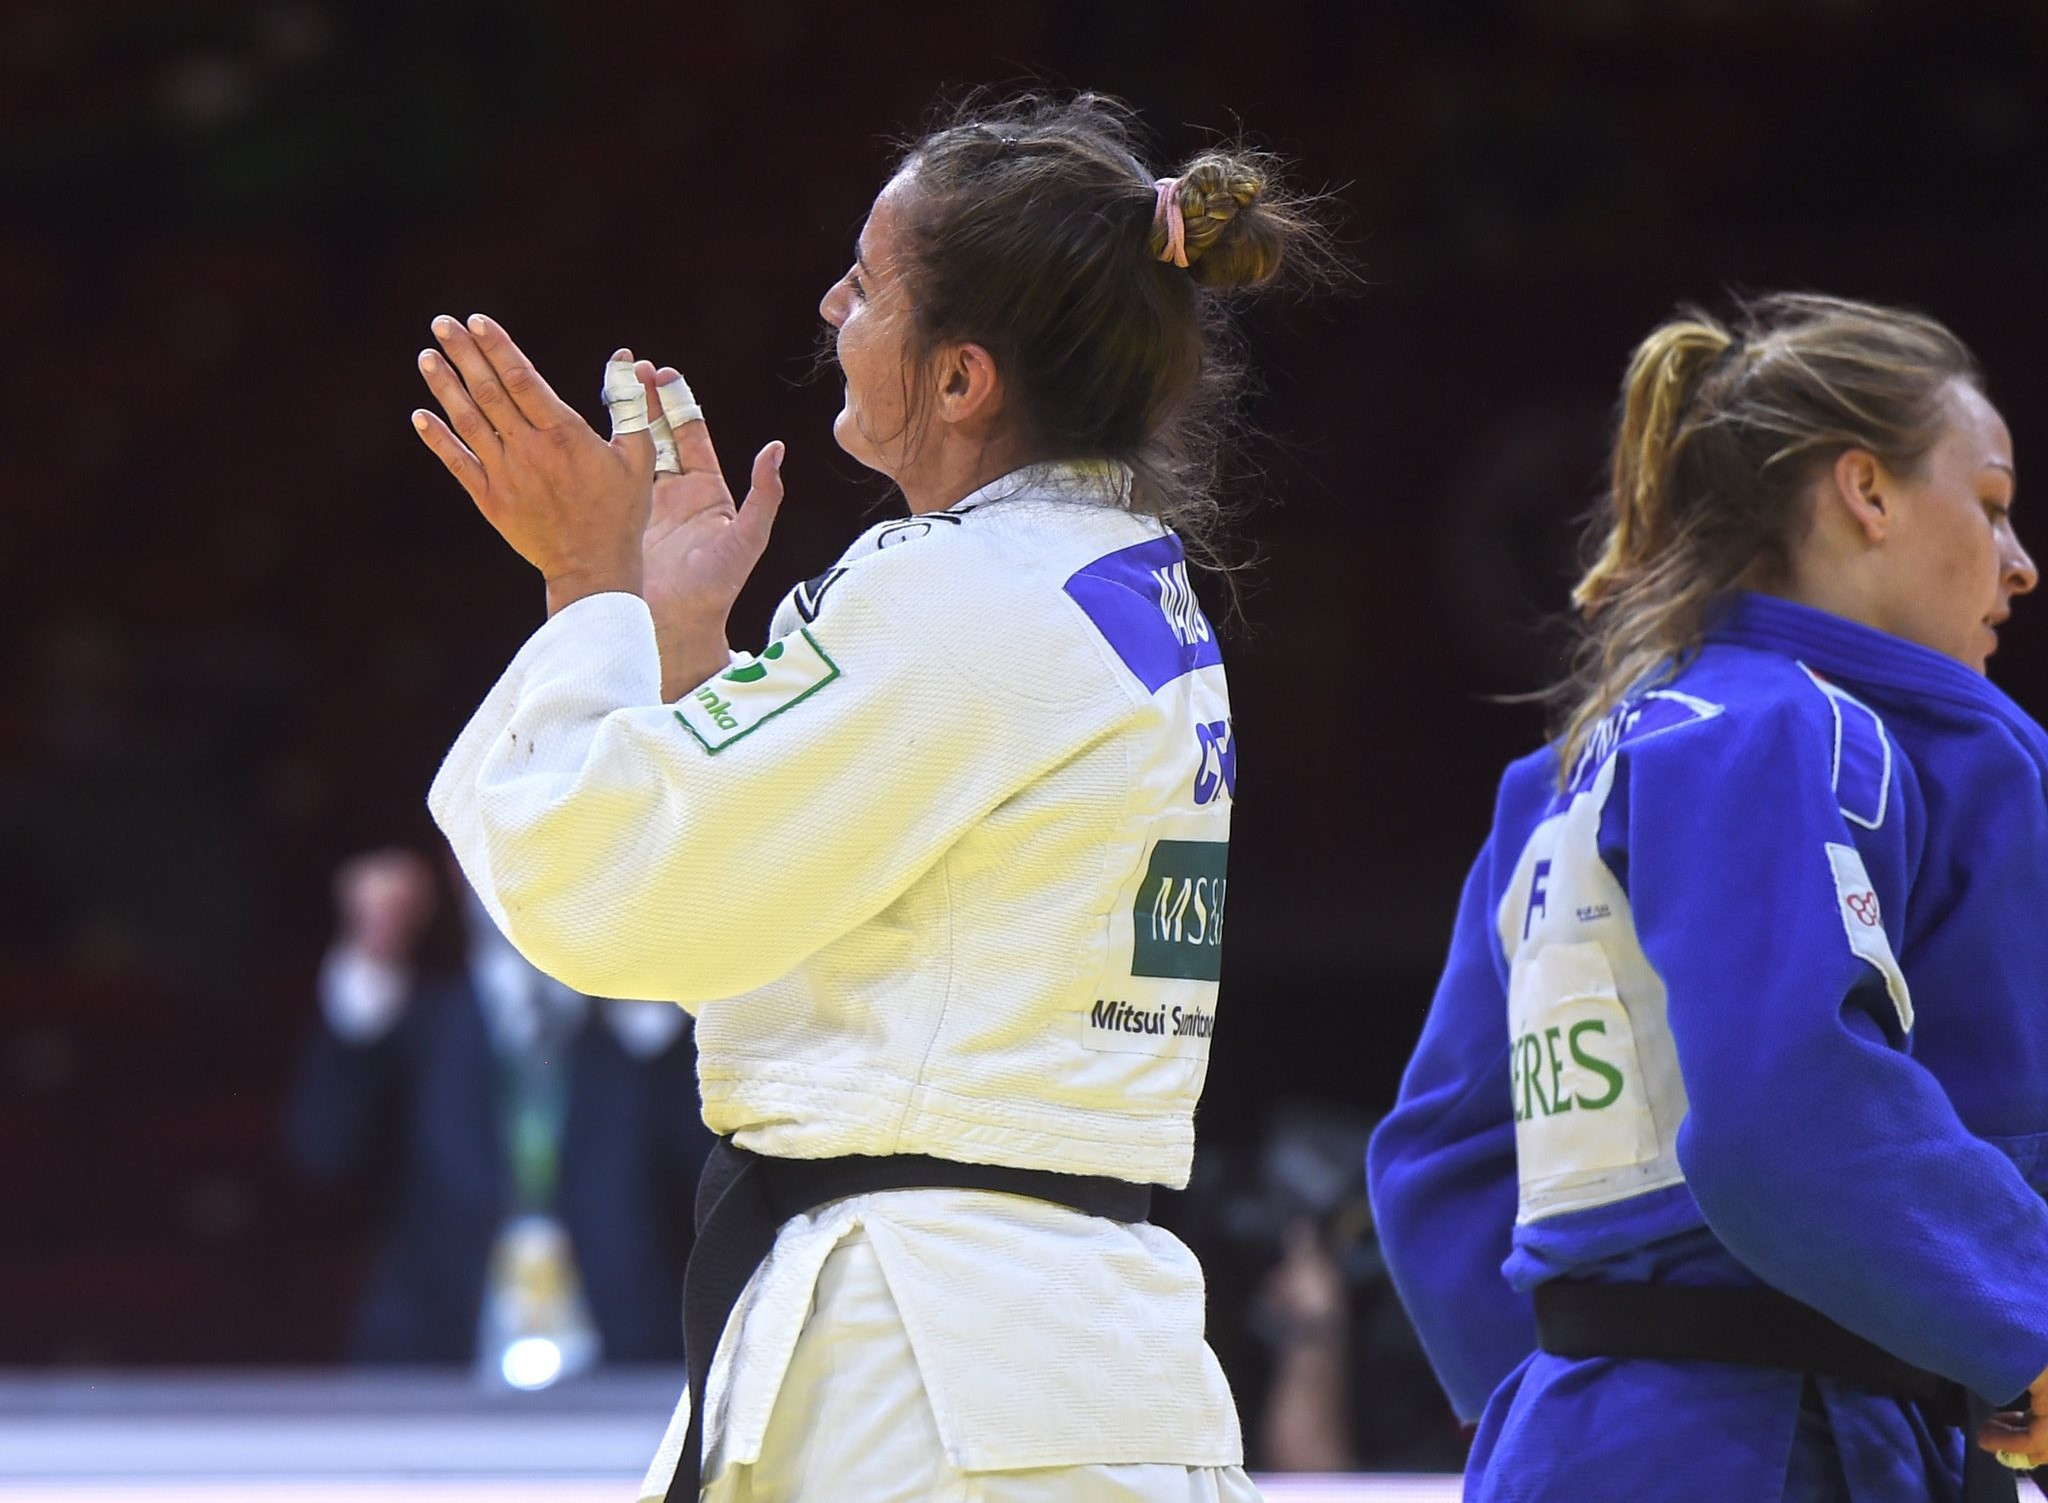 Barbara Matić beat three of the four medalists at last years World Championship to secure the women's under-70kg title ©IJF